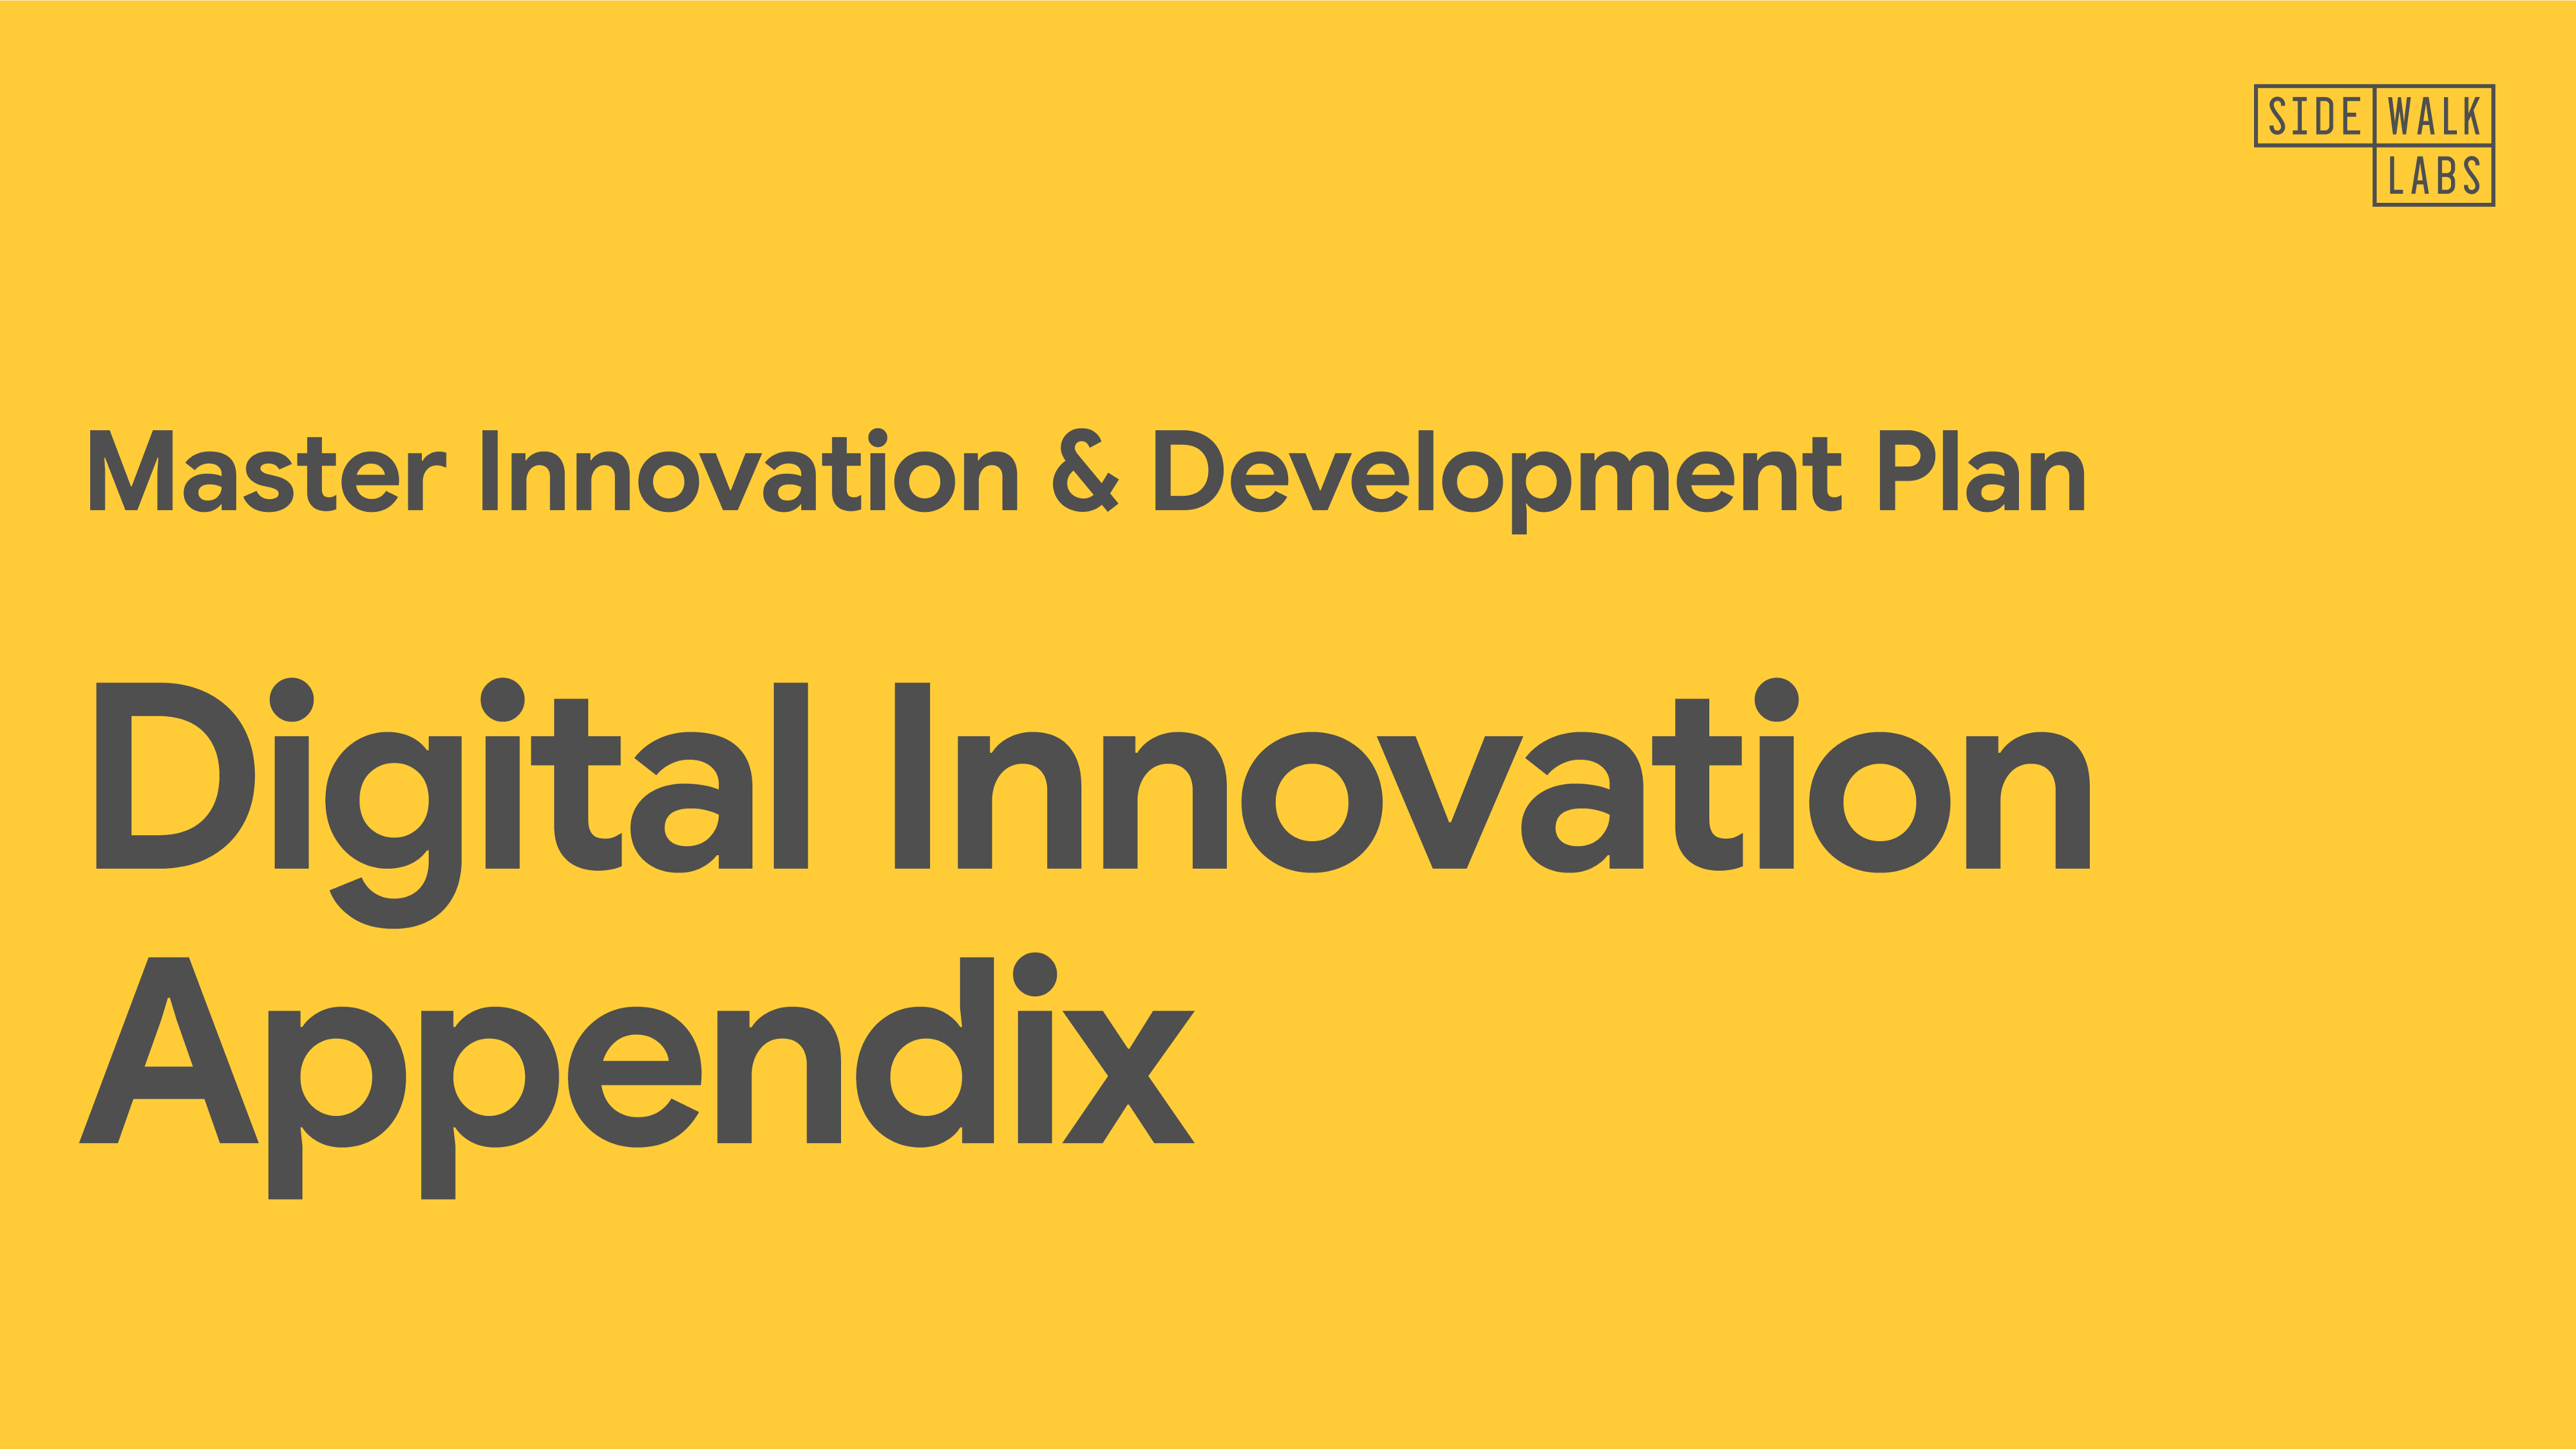 Cover image for the Digital Innovation Appendix.